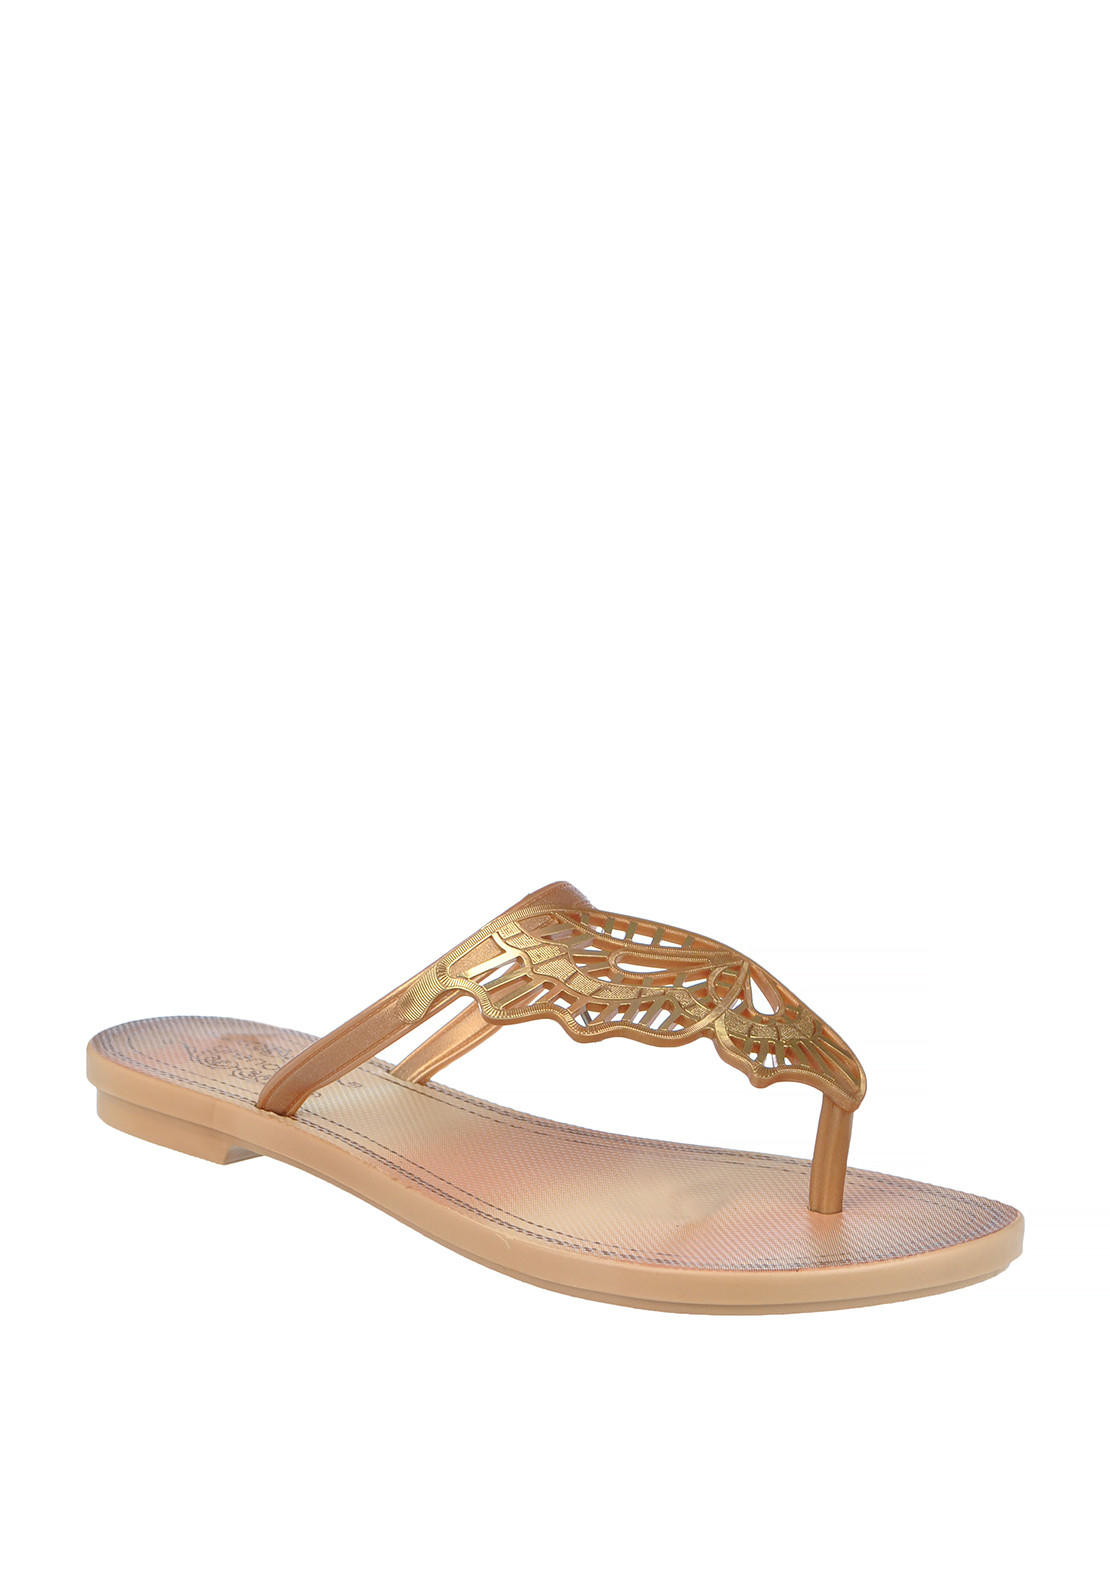 Ipanema Butterfly Wing Toe Thong Flip Flop Sandal, Gold